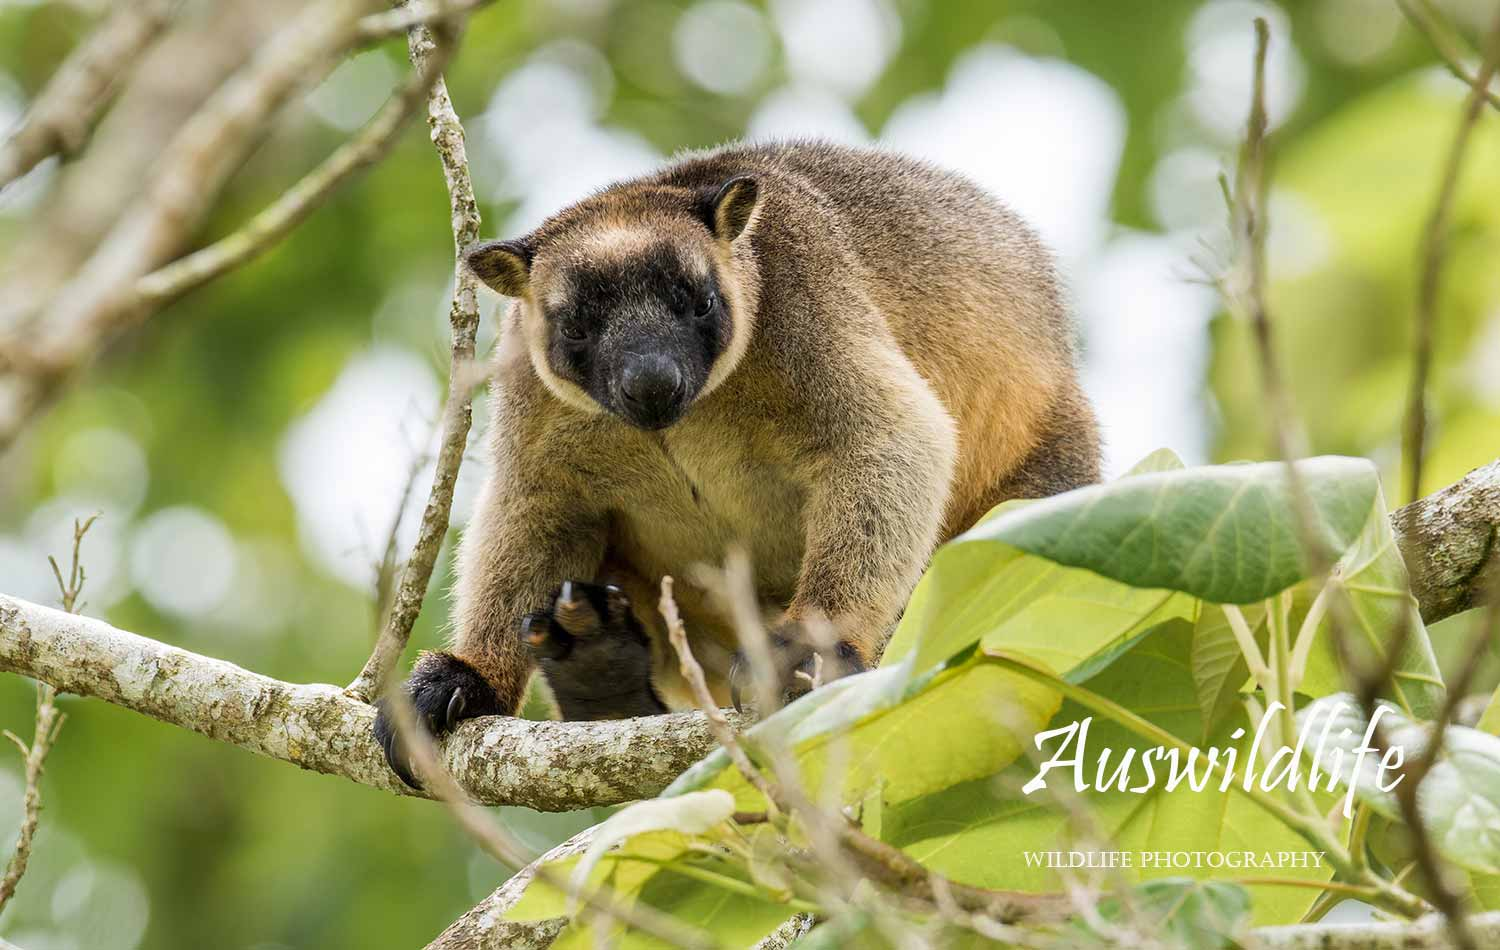 Australian wildlife stock photography